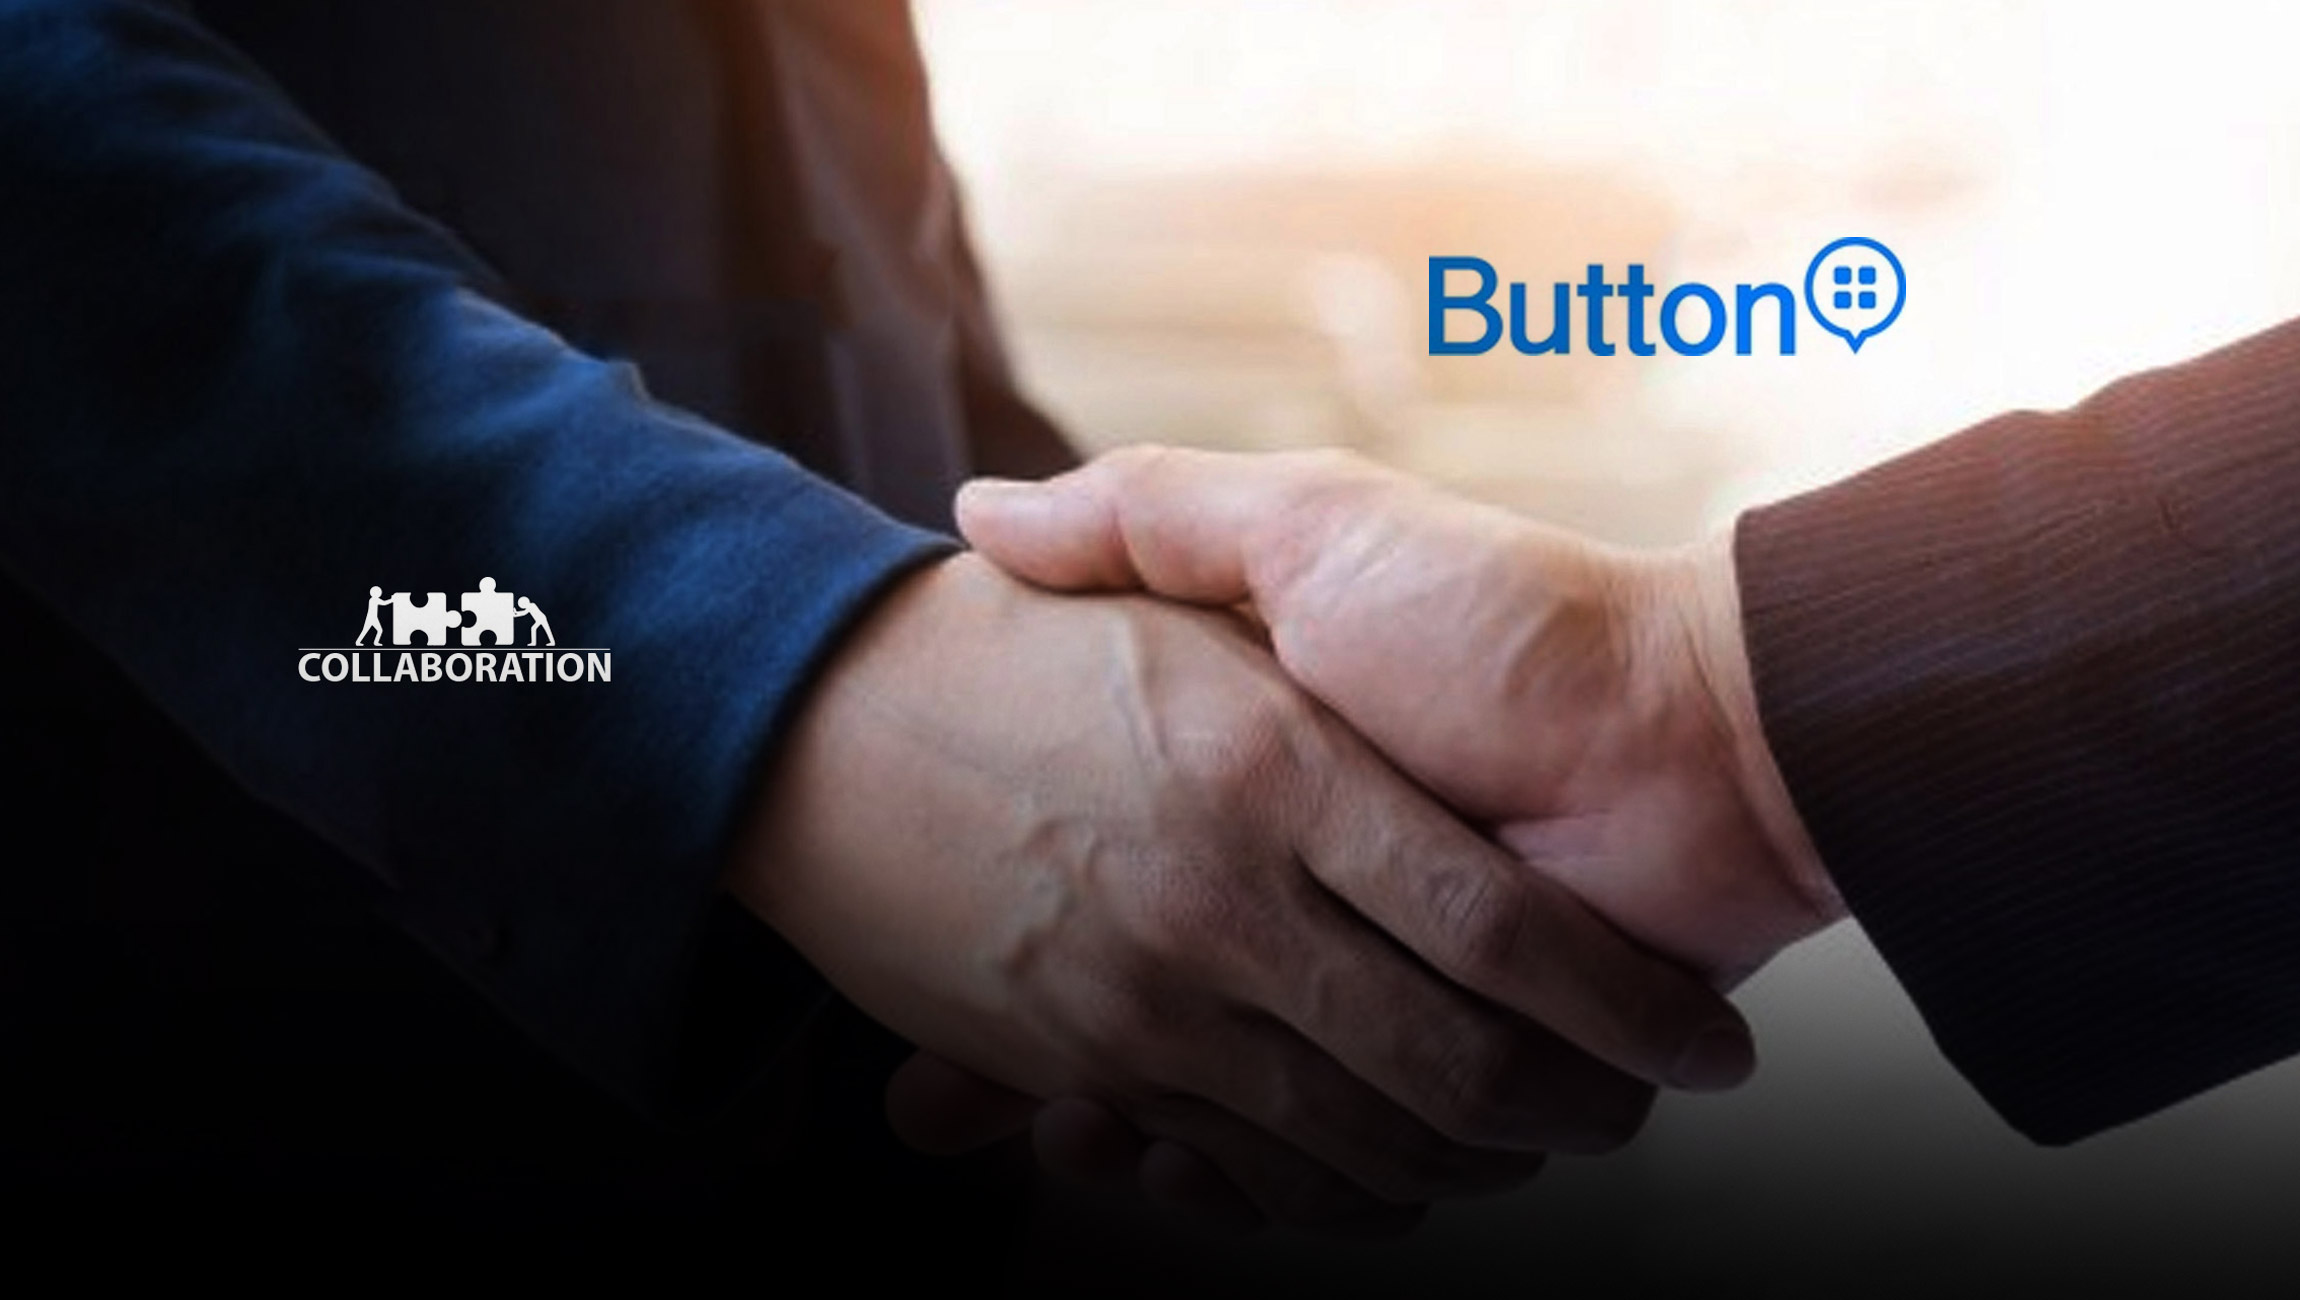 Drop Doubles Down on Personalization in Partnership With Button